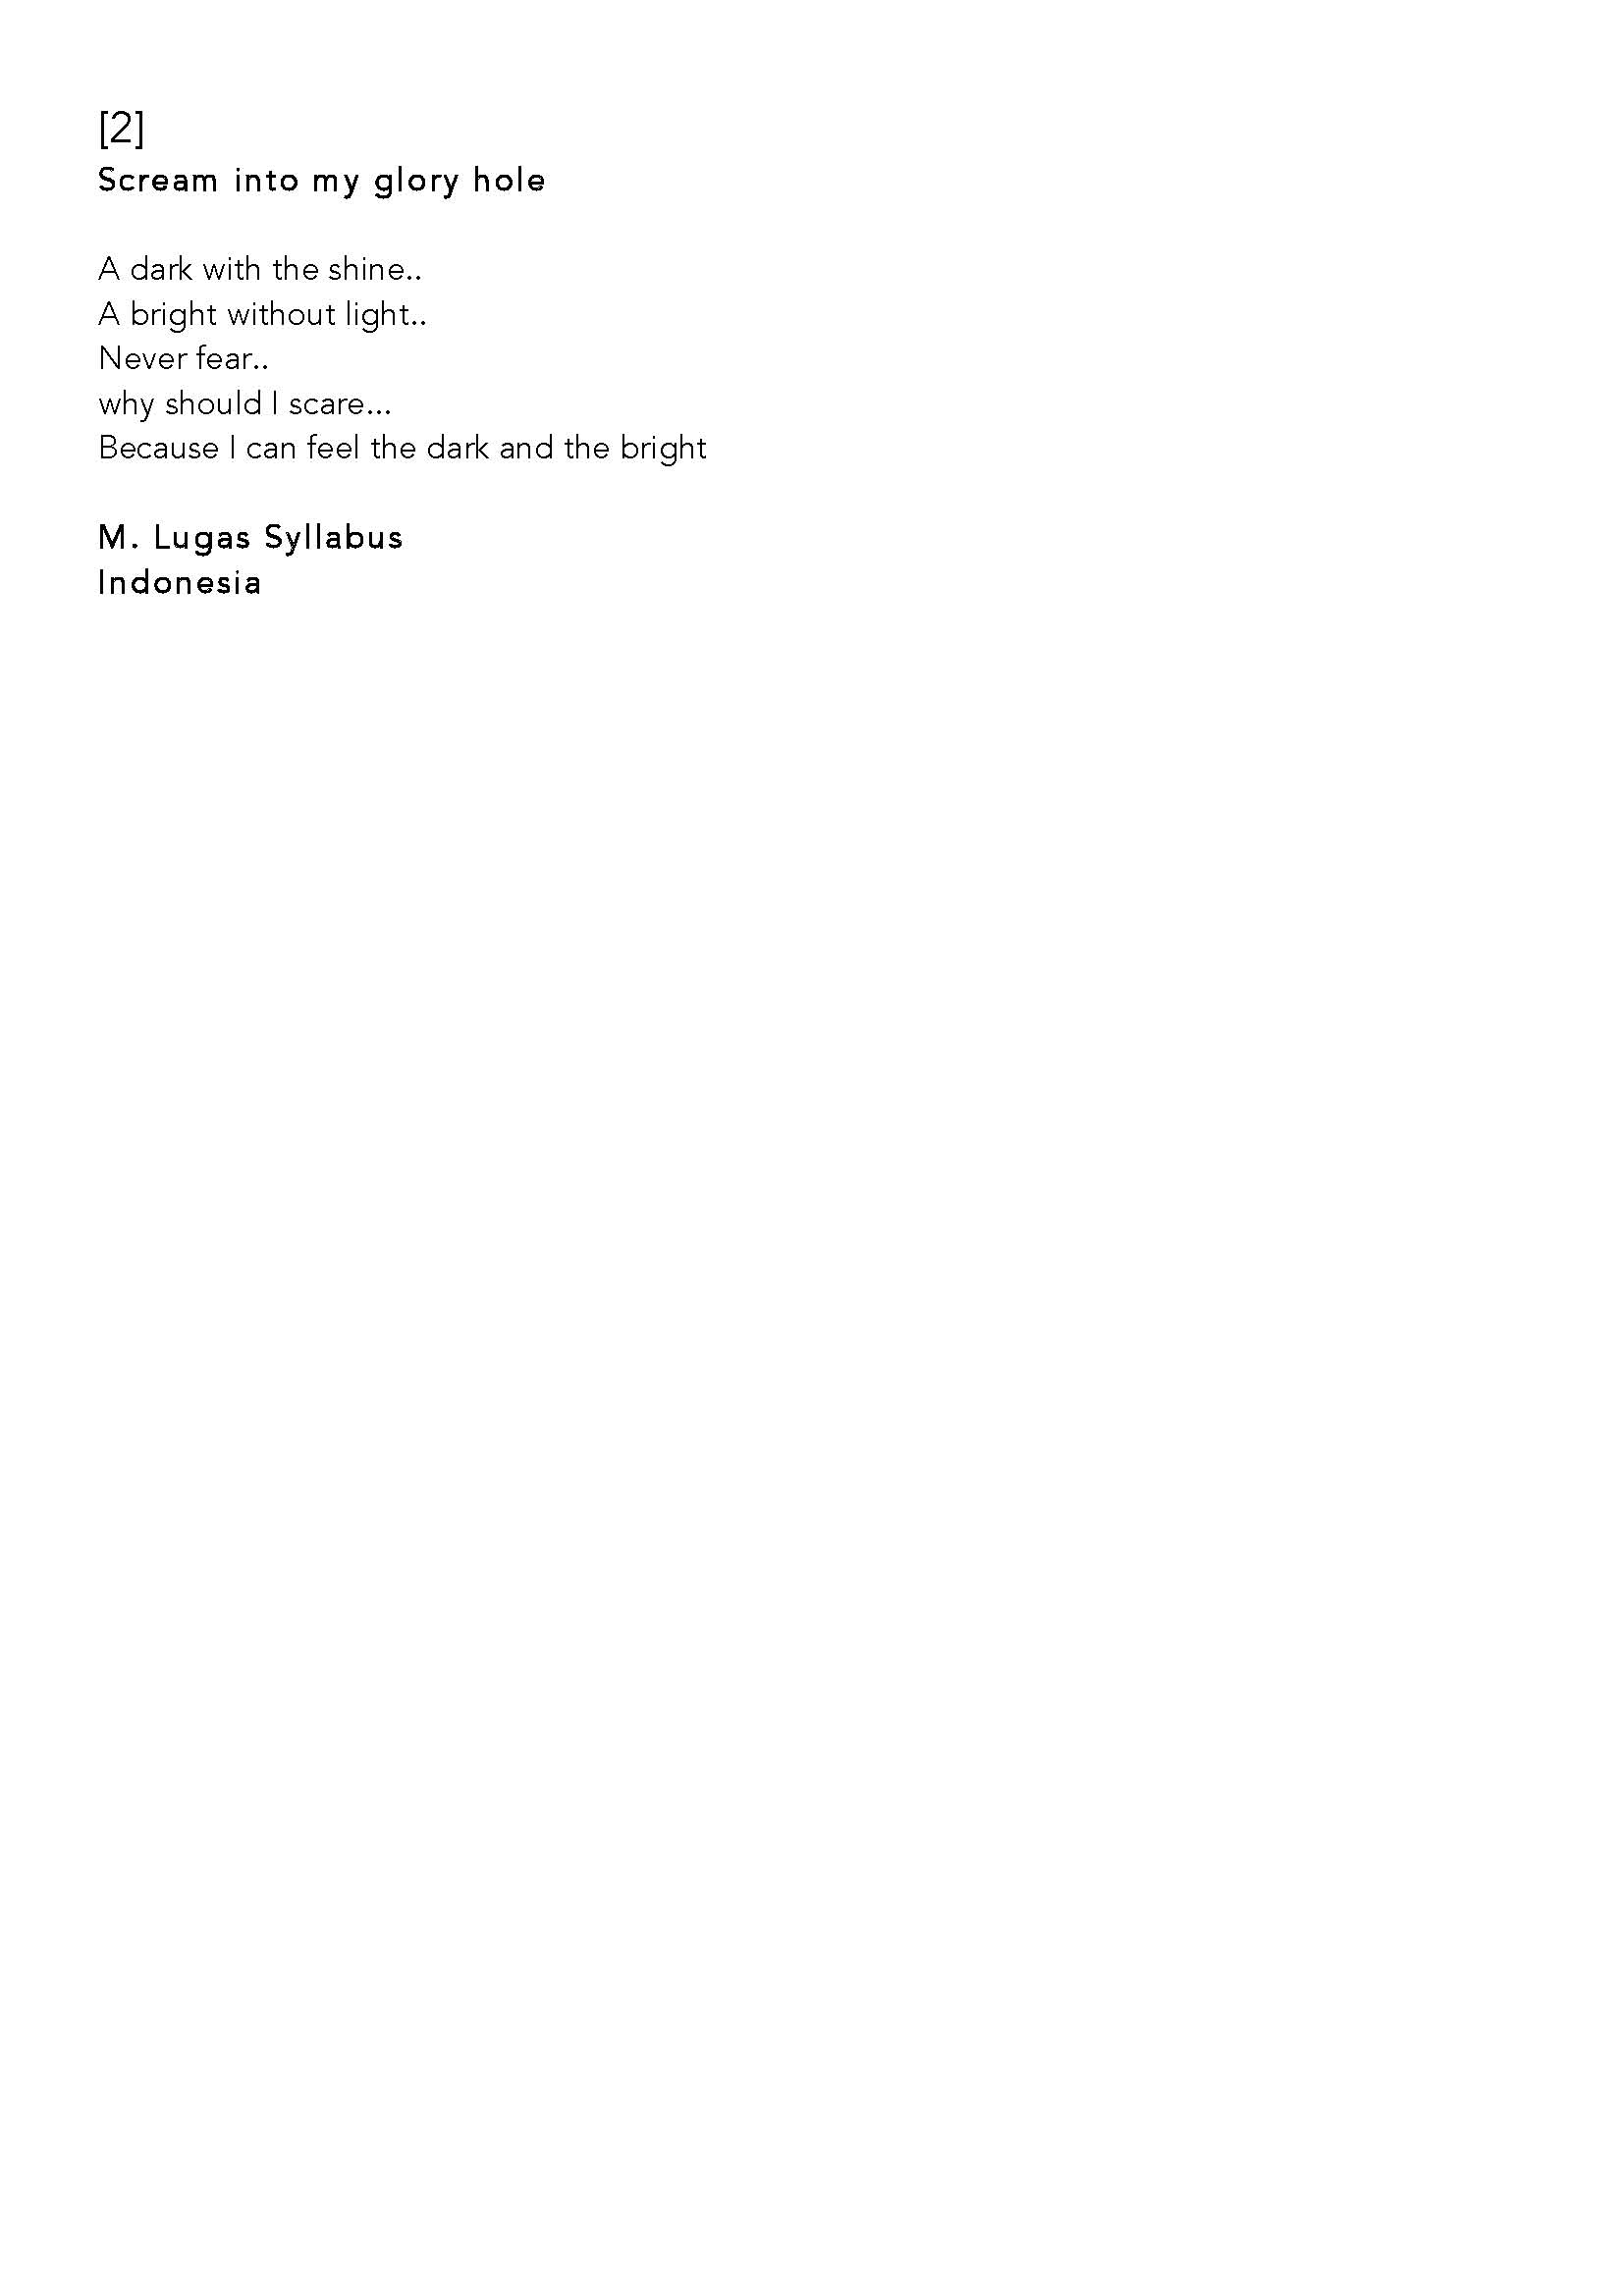 Poetry Collection - Everyone can Poetry _ For 12 May 2014 - R2_Page_02.jpg